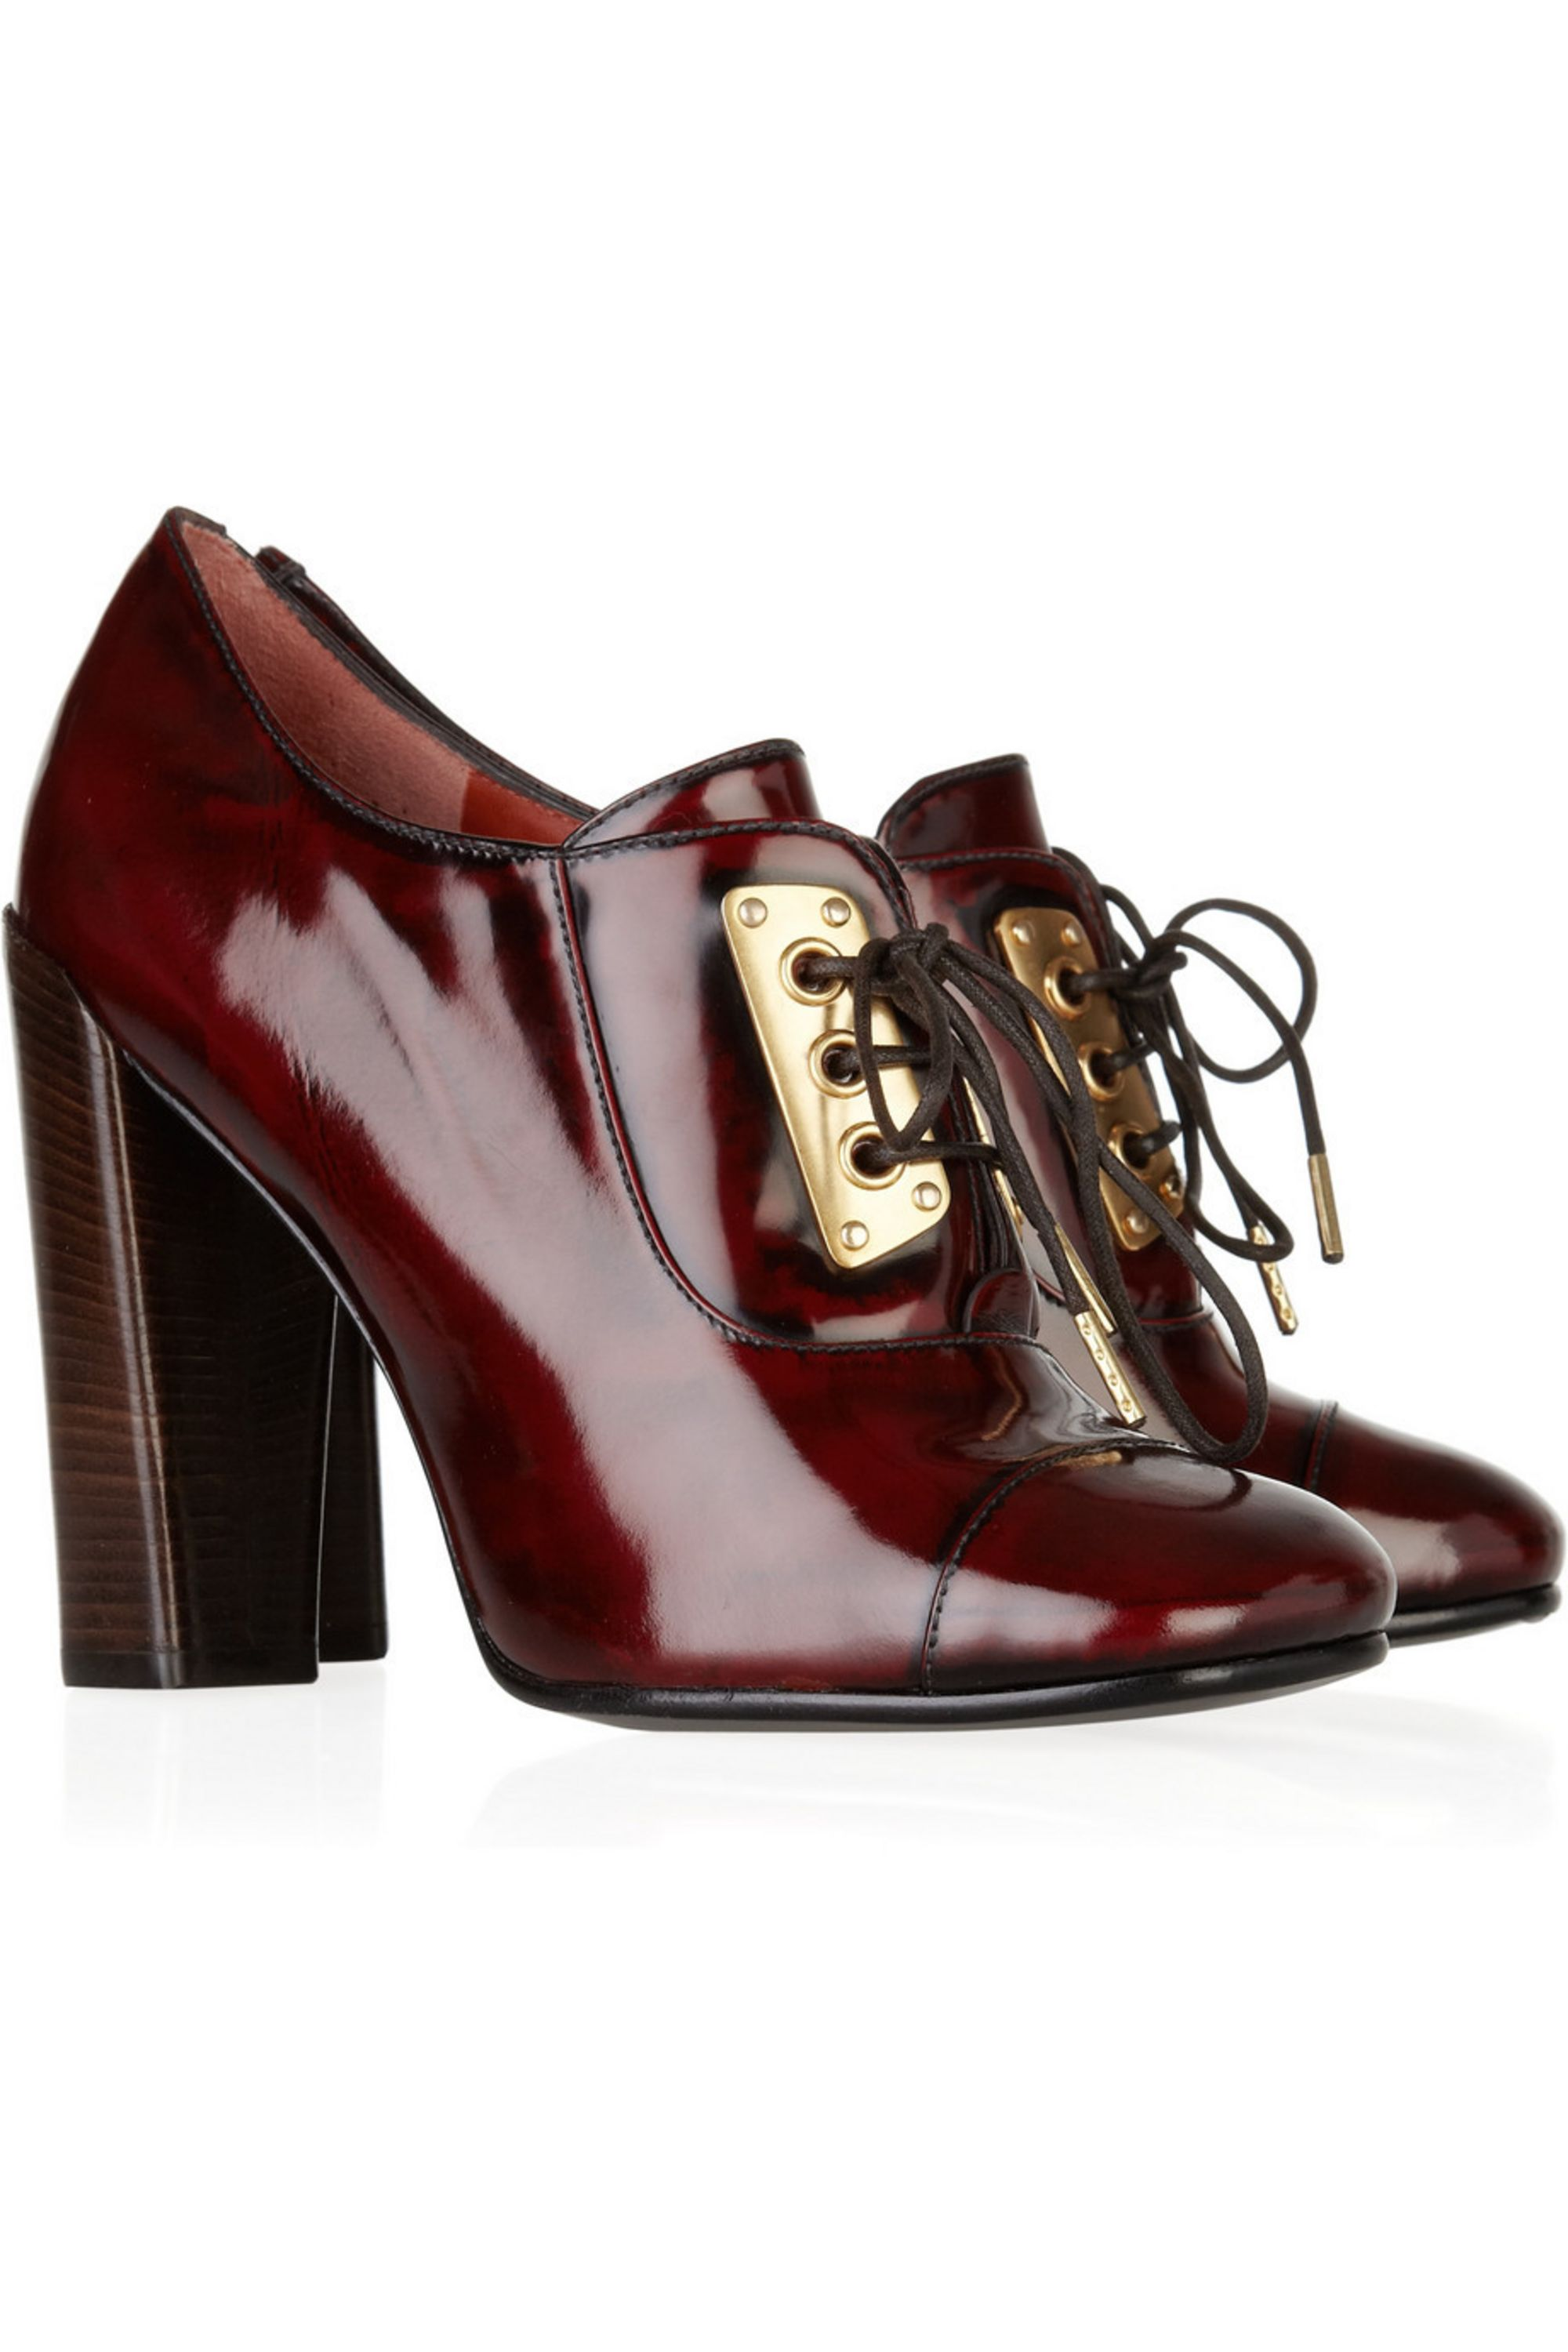 Marc by Marc Jacobs Lace-up patent-leather pumps